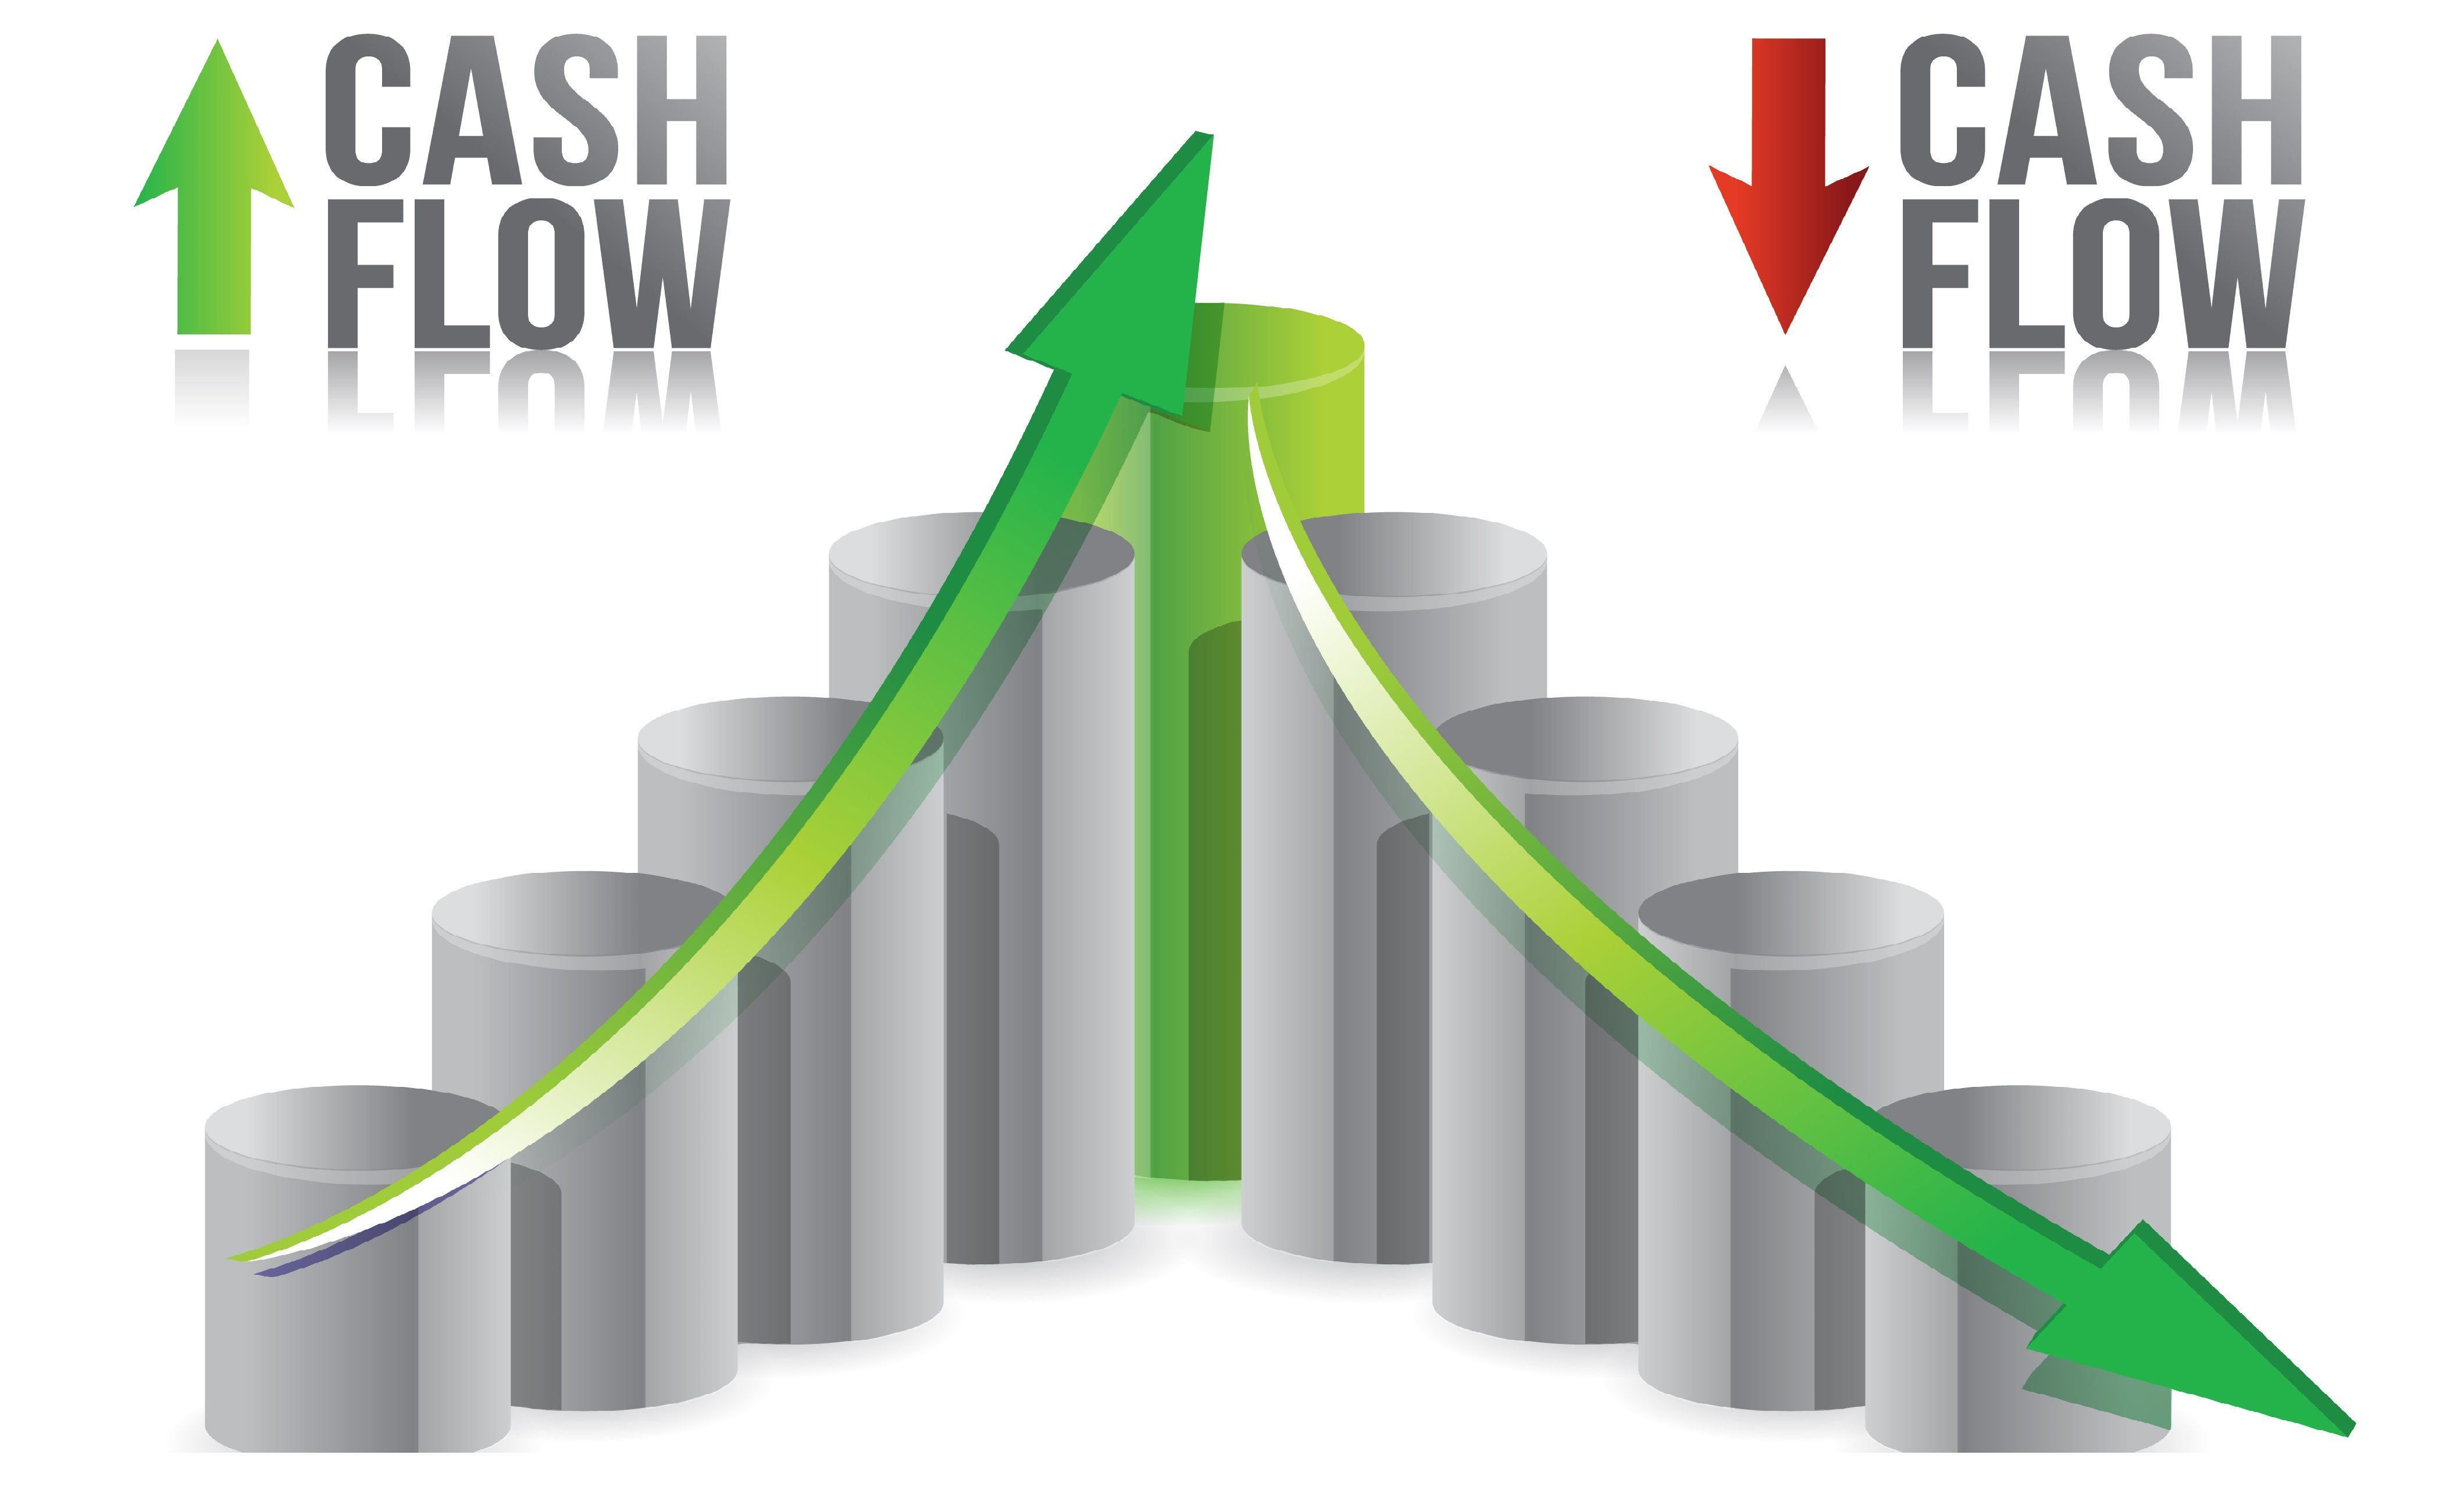 unconventional cash flow profile